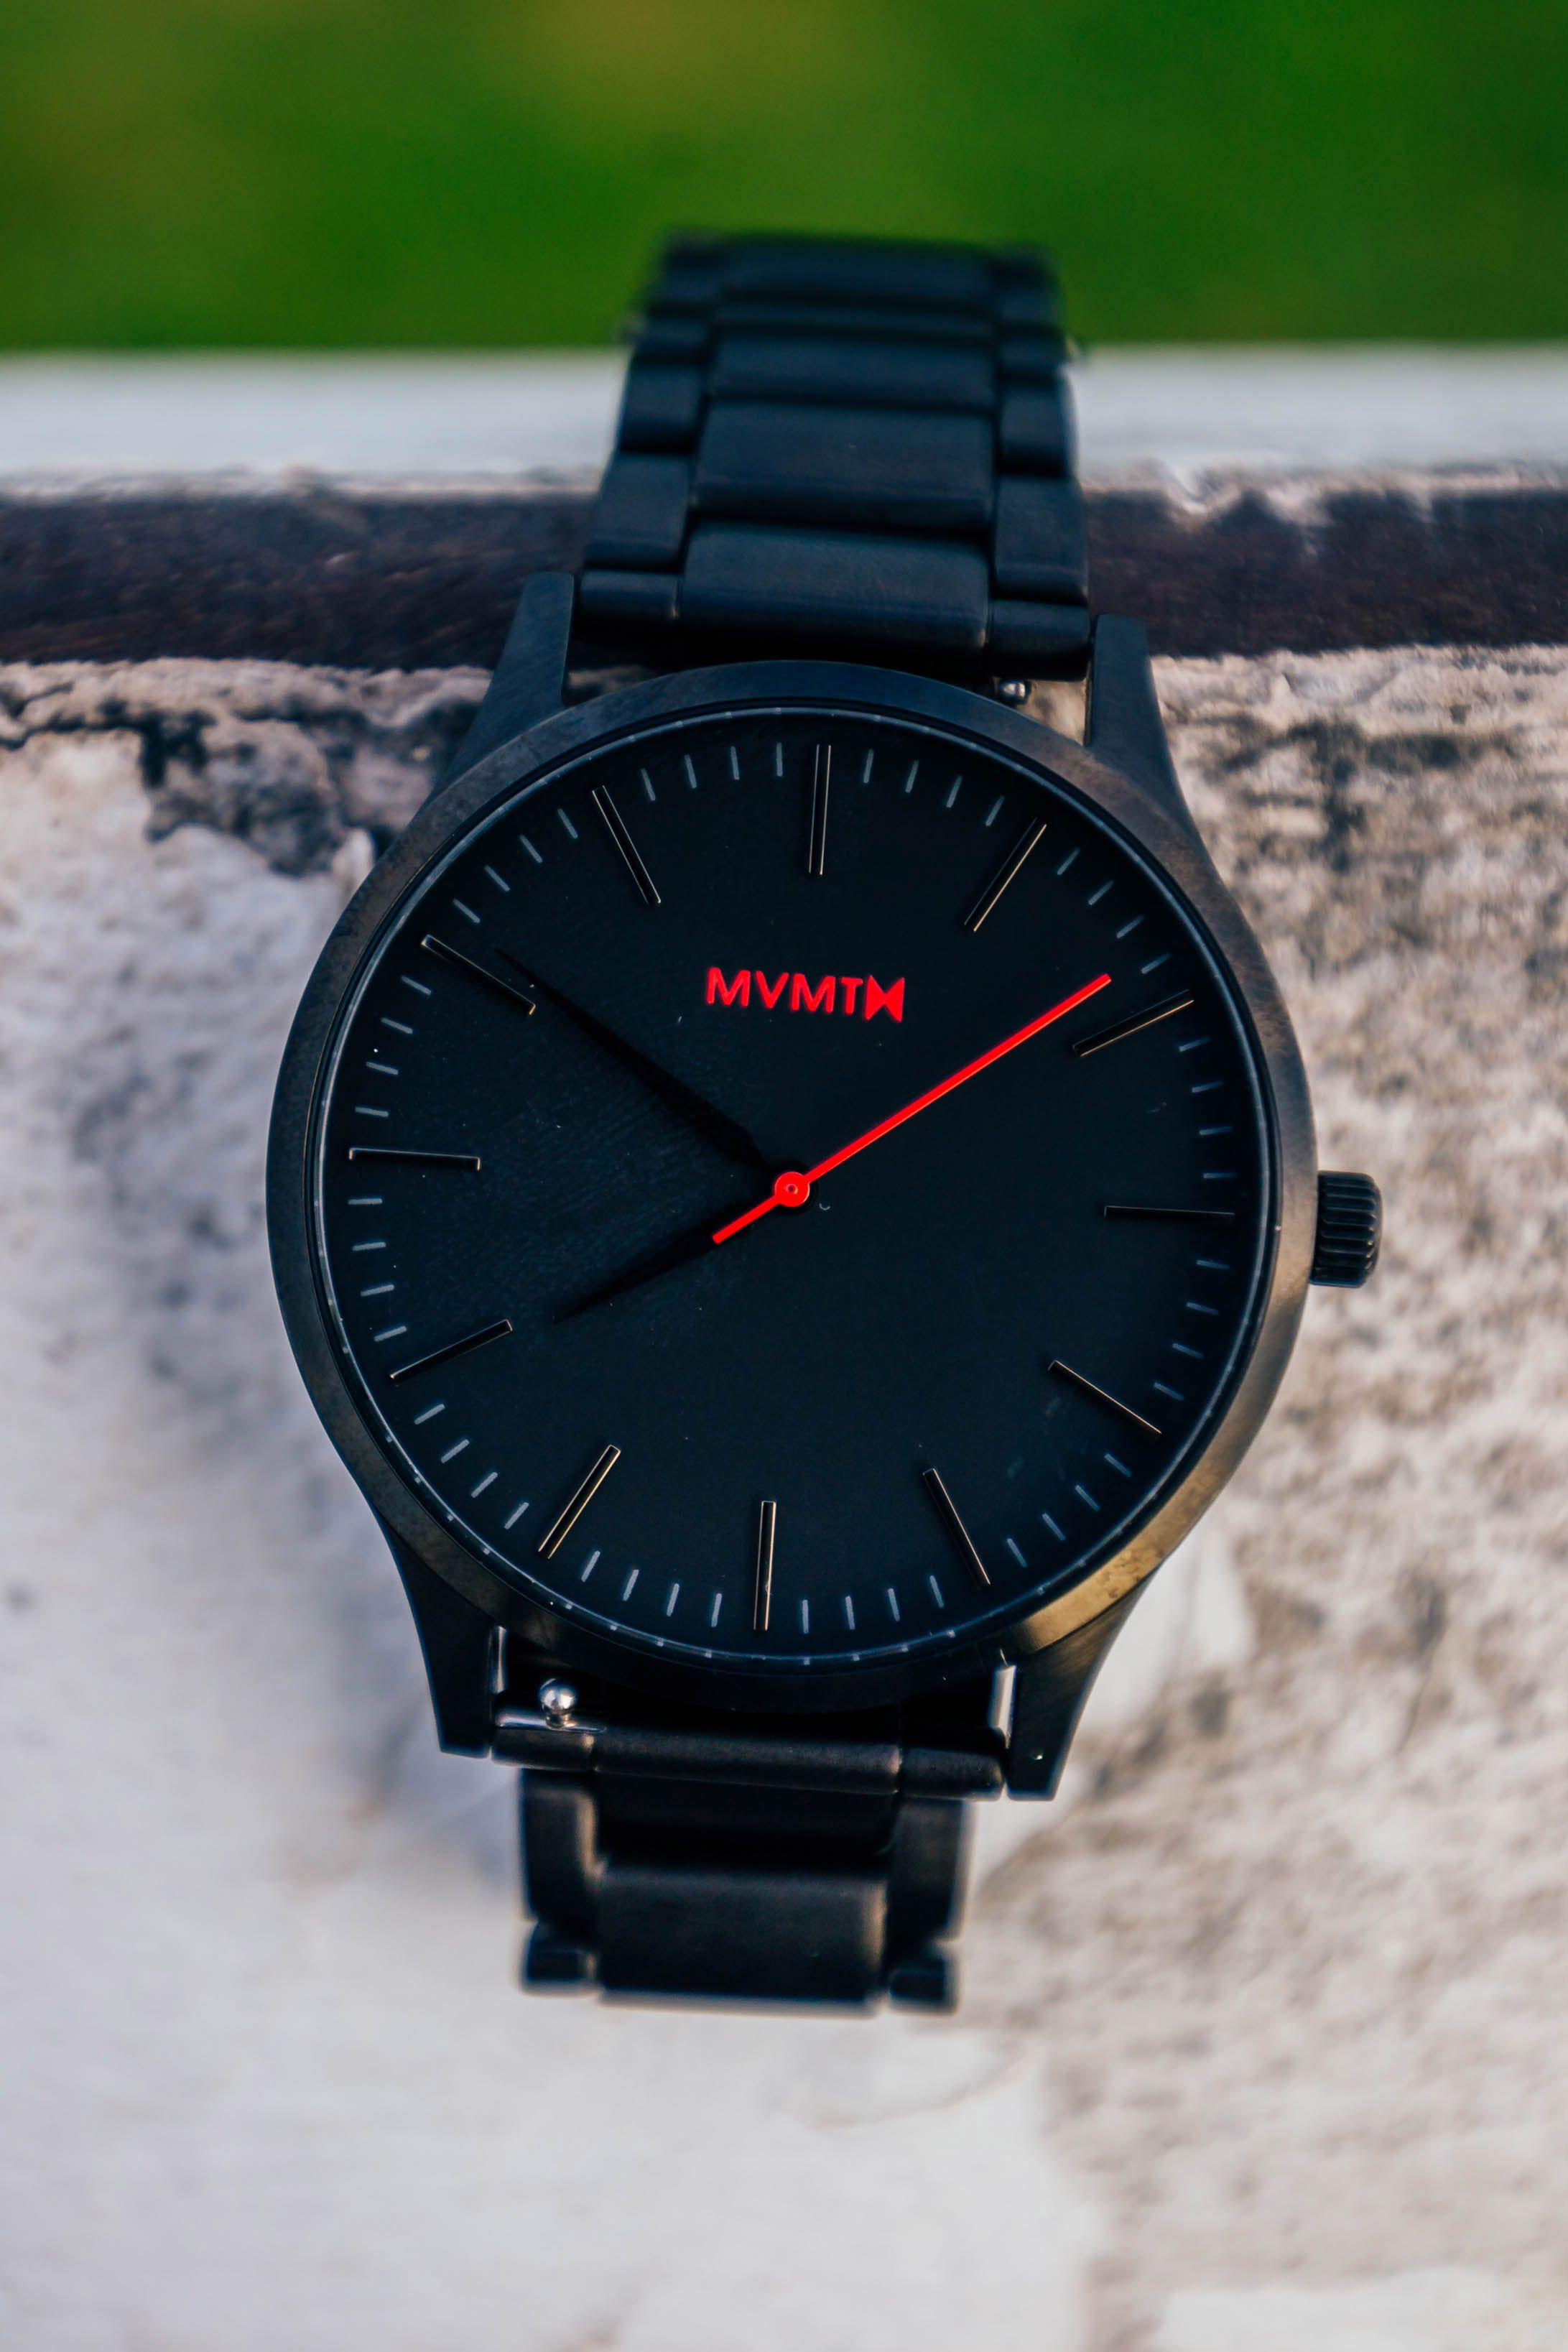 Pin By Mvmt On Chasy In 2020 Mens Dress Watches Watches For Men Timex Watches [ 3274 x 2183 Pixel ]